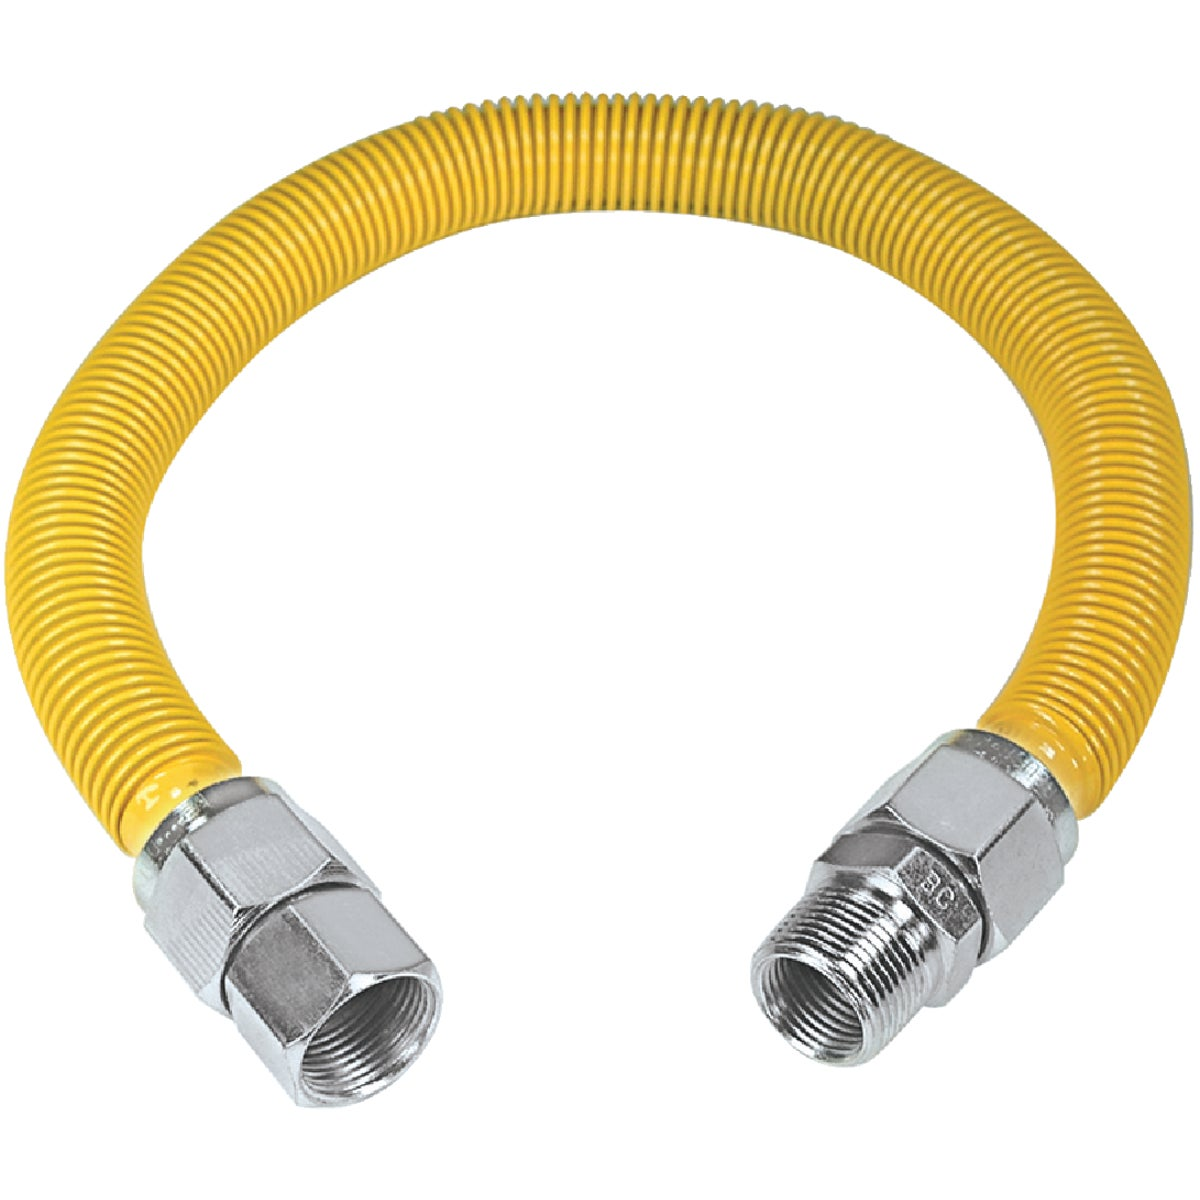 7/8X36 GAS CONNECTOR - CSSB21-36 by Brass Craft